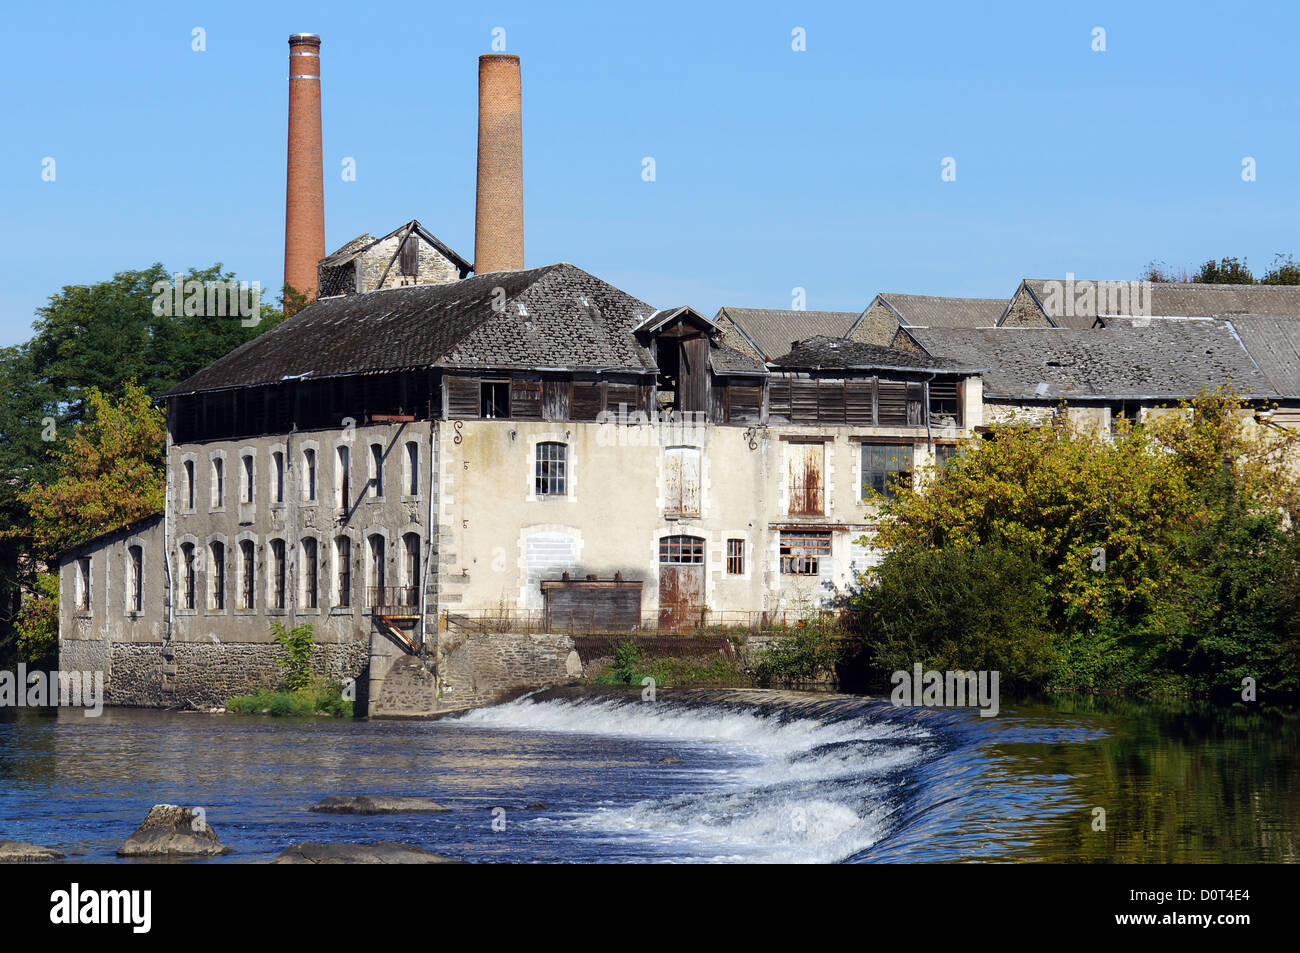 Old tannery along the Vienne River in Saint-Junien, Limousin, France - Stock Image